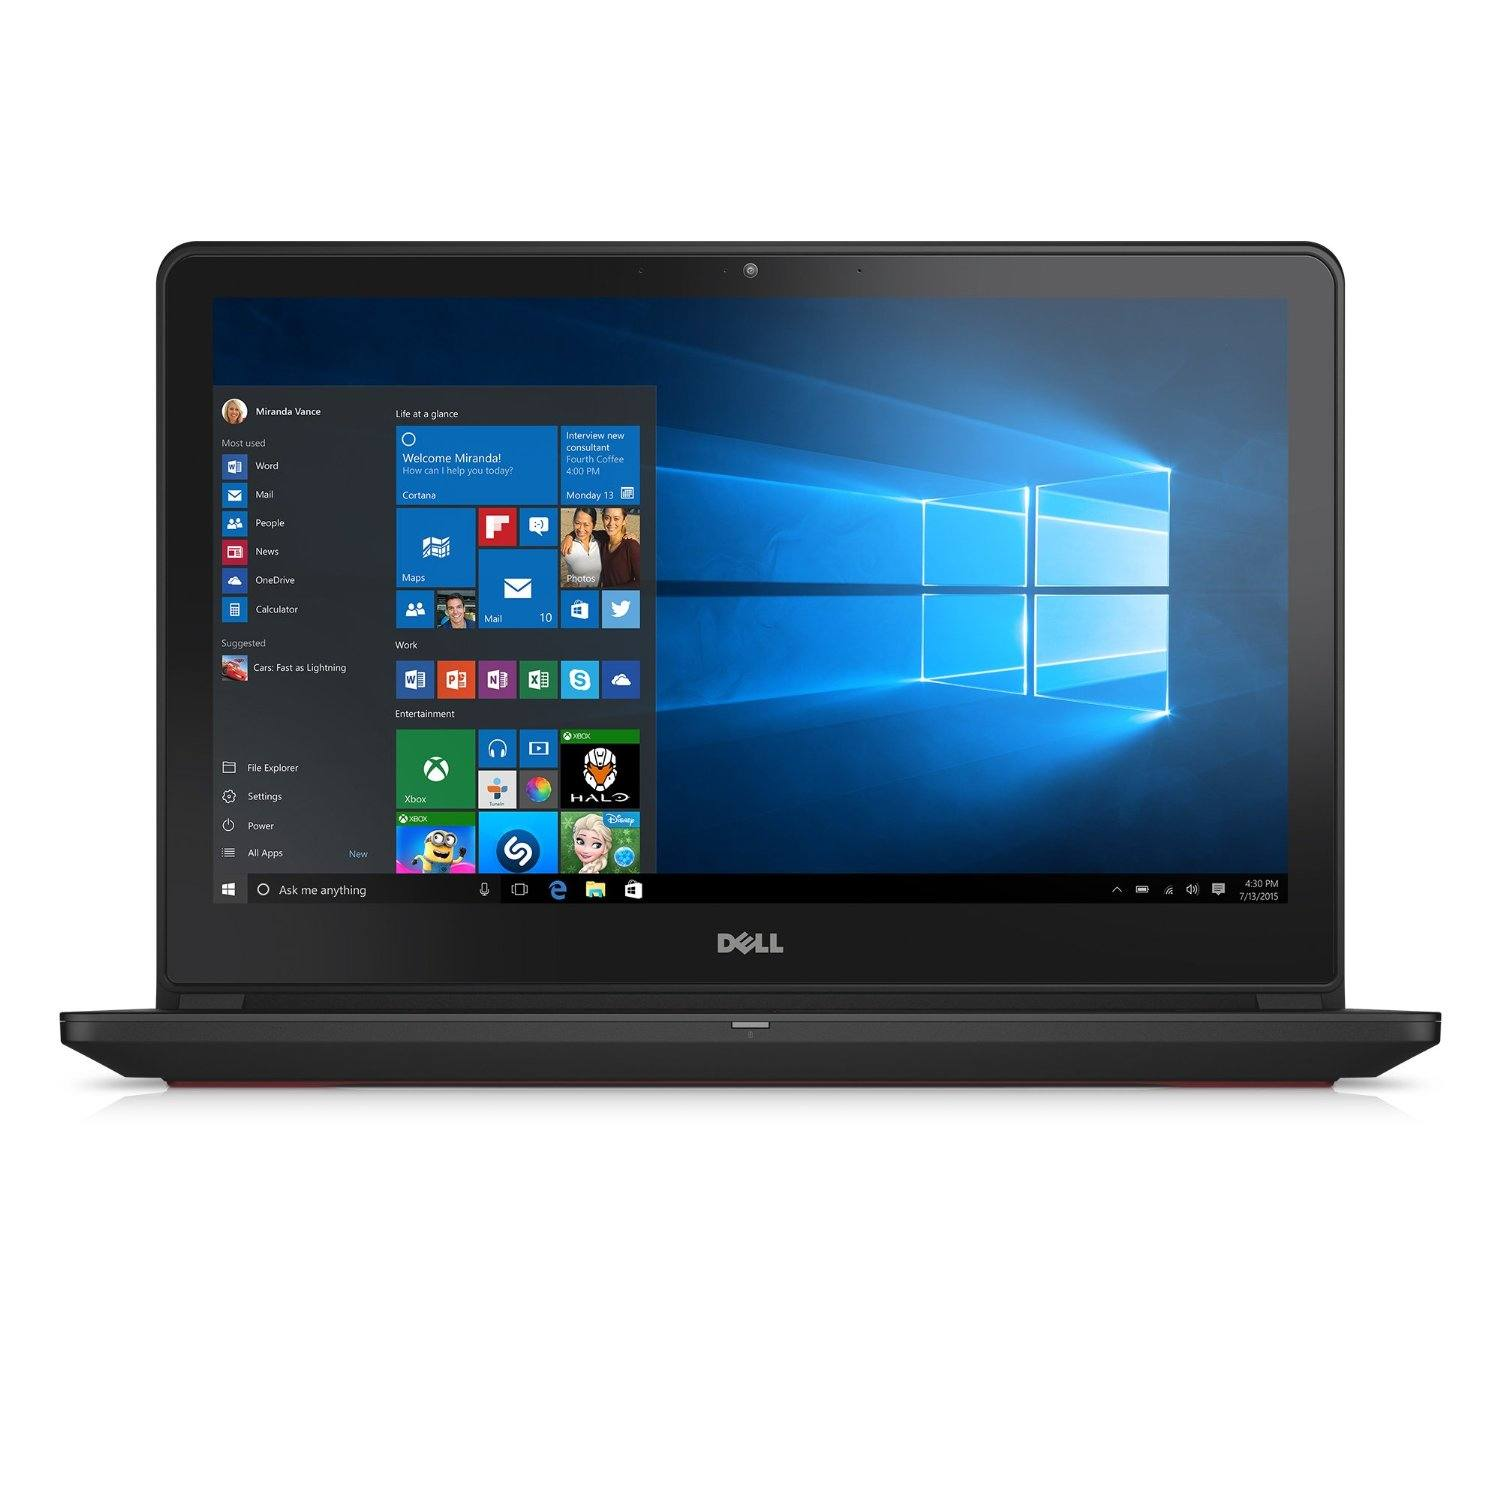 What is the best laptop I can buy for around $700?